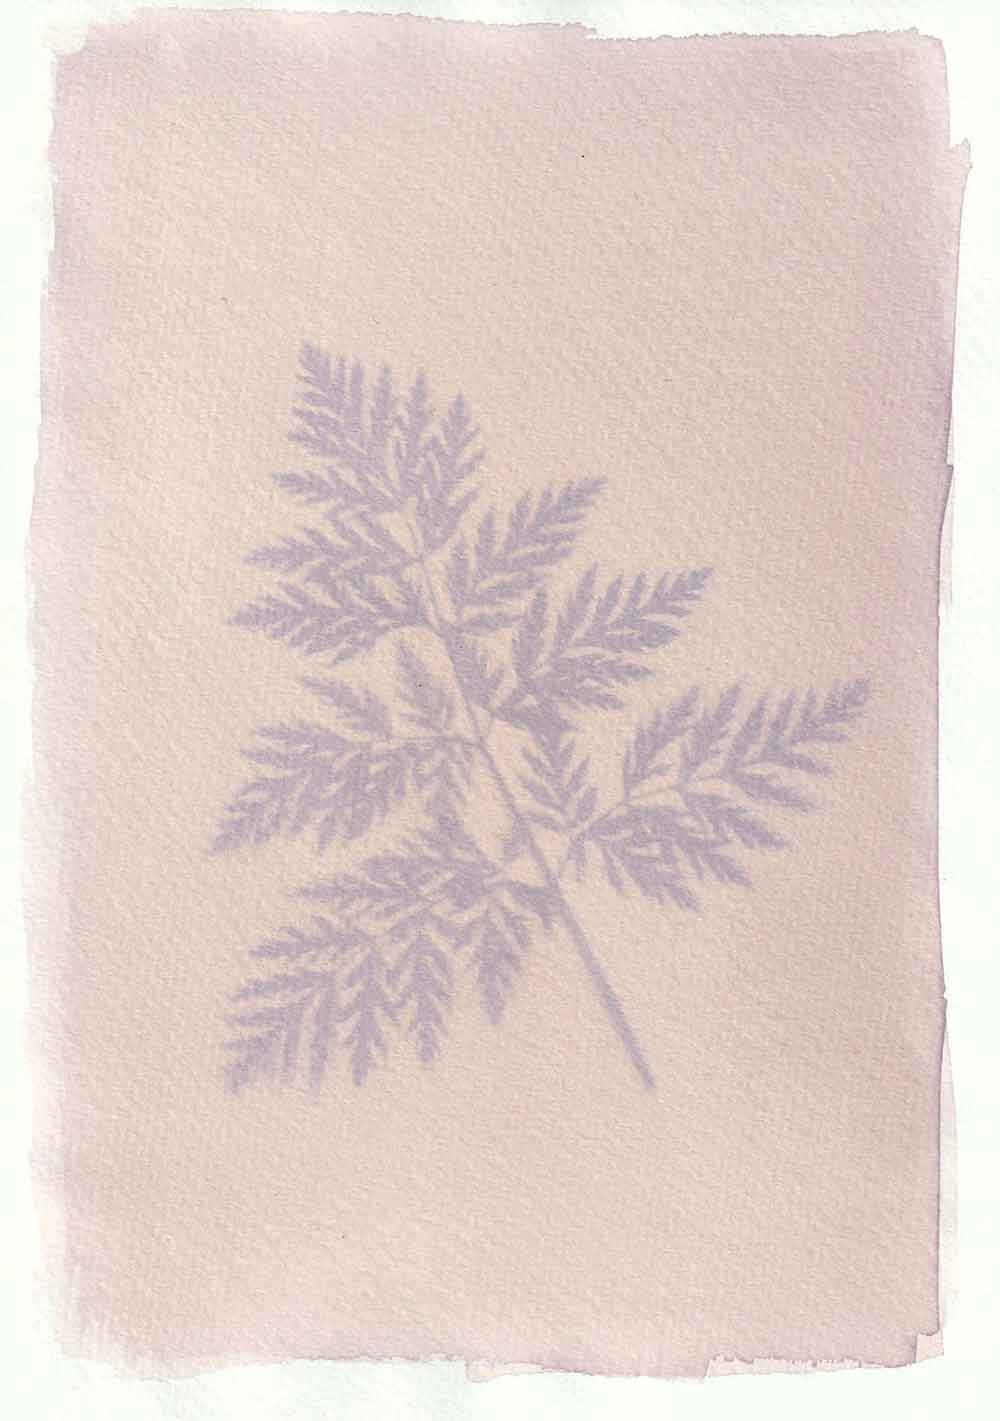 Cow parsley anthotype prints by Tim Boddy